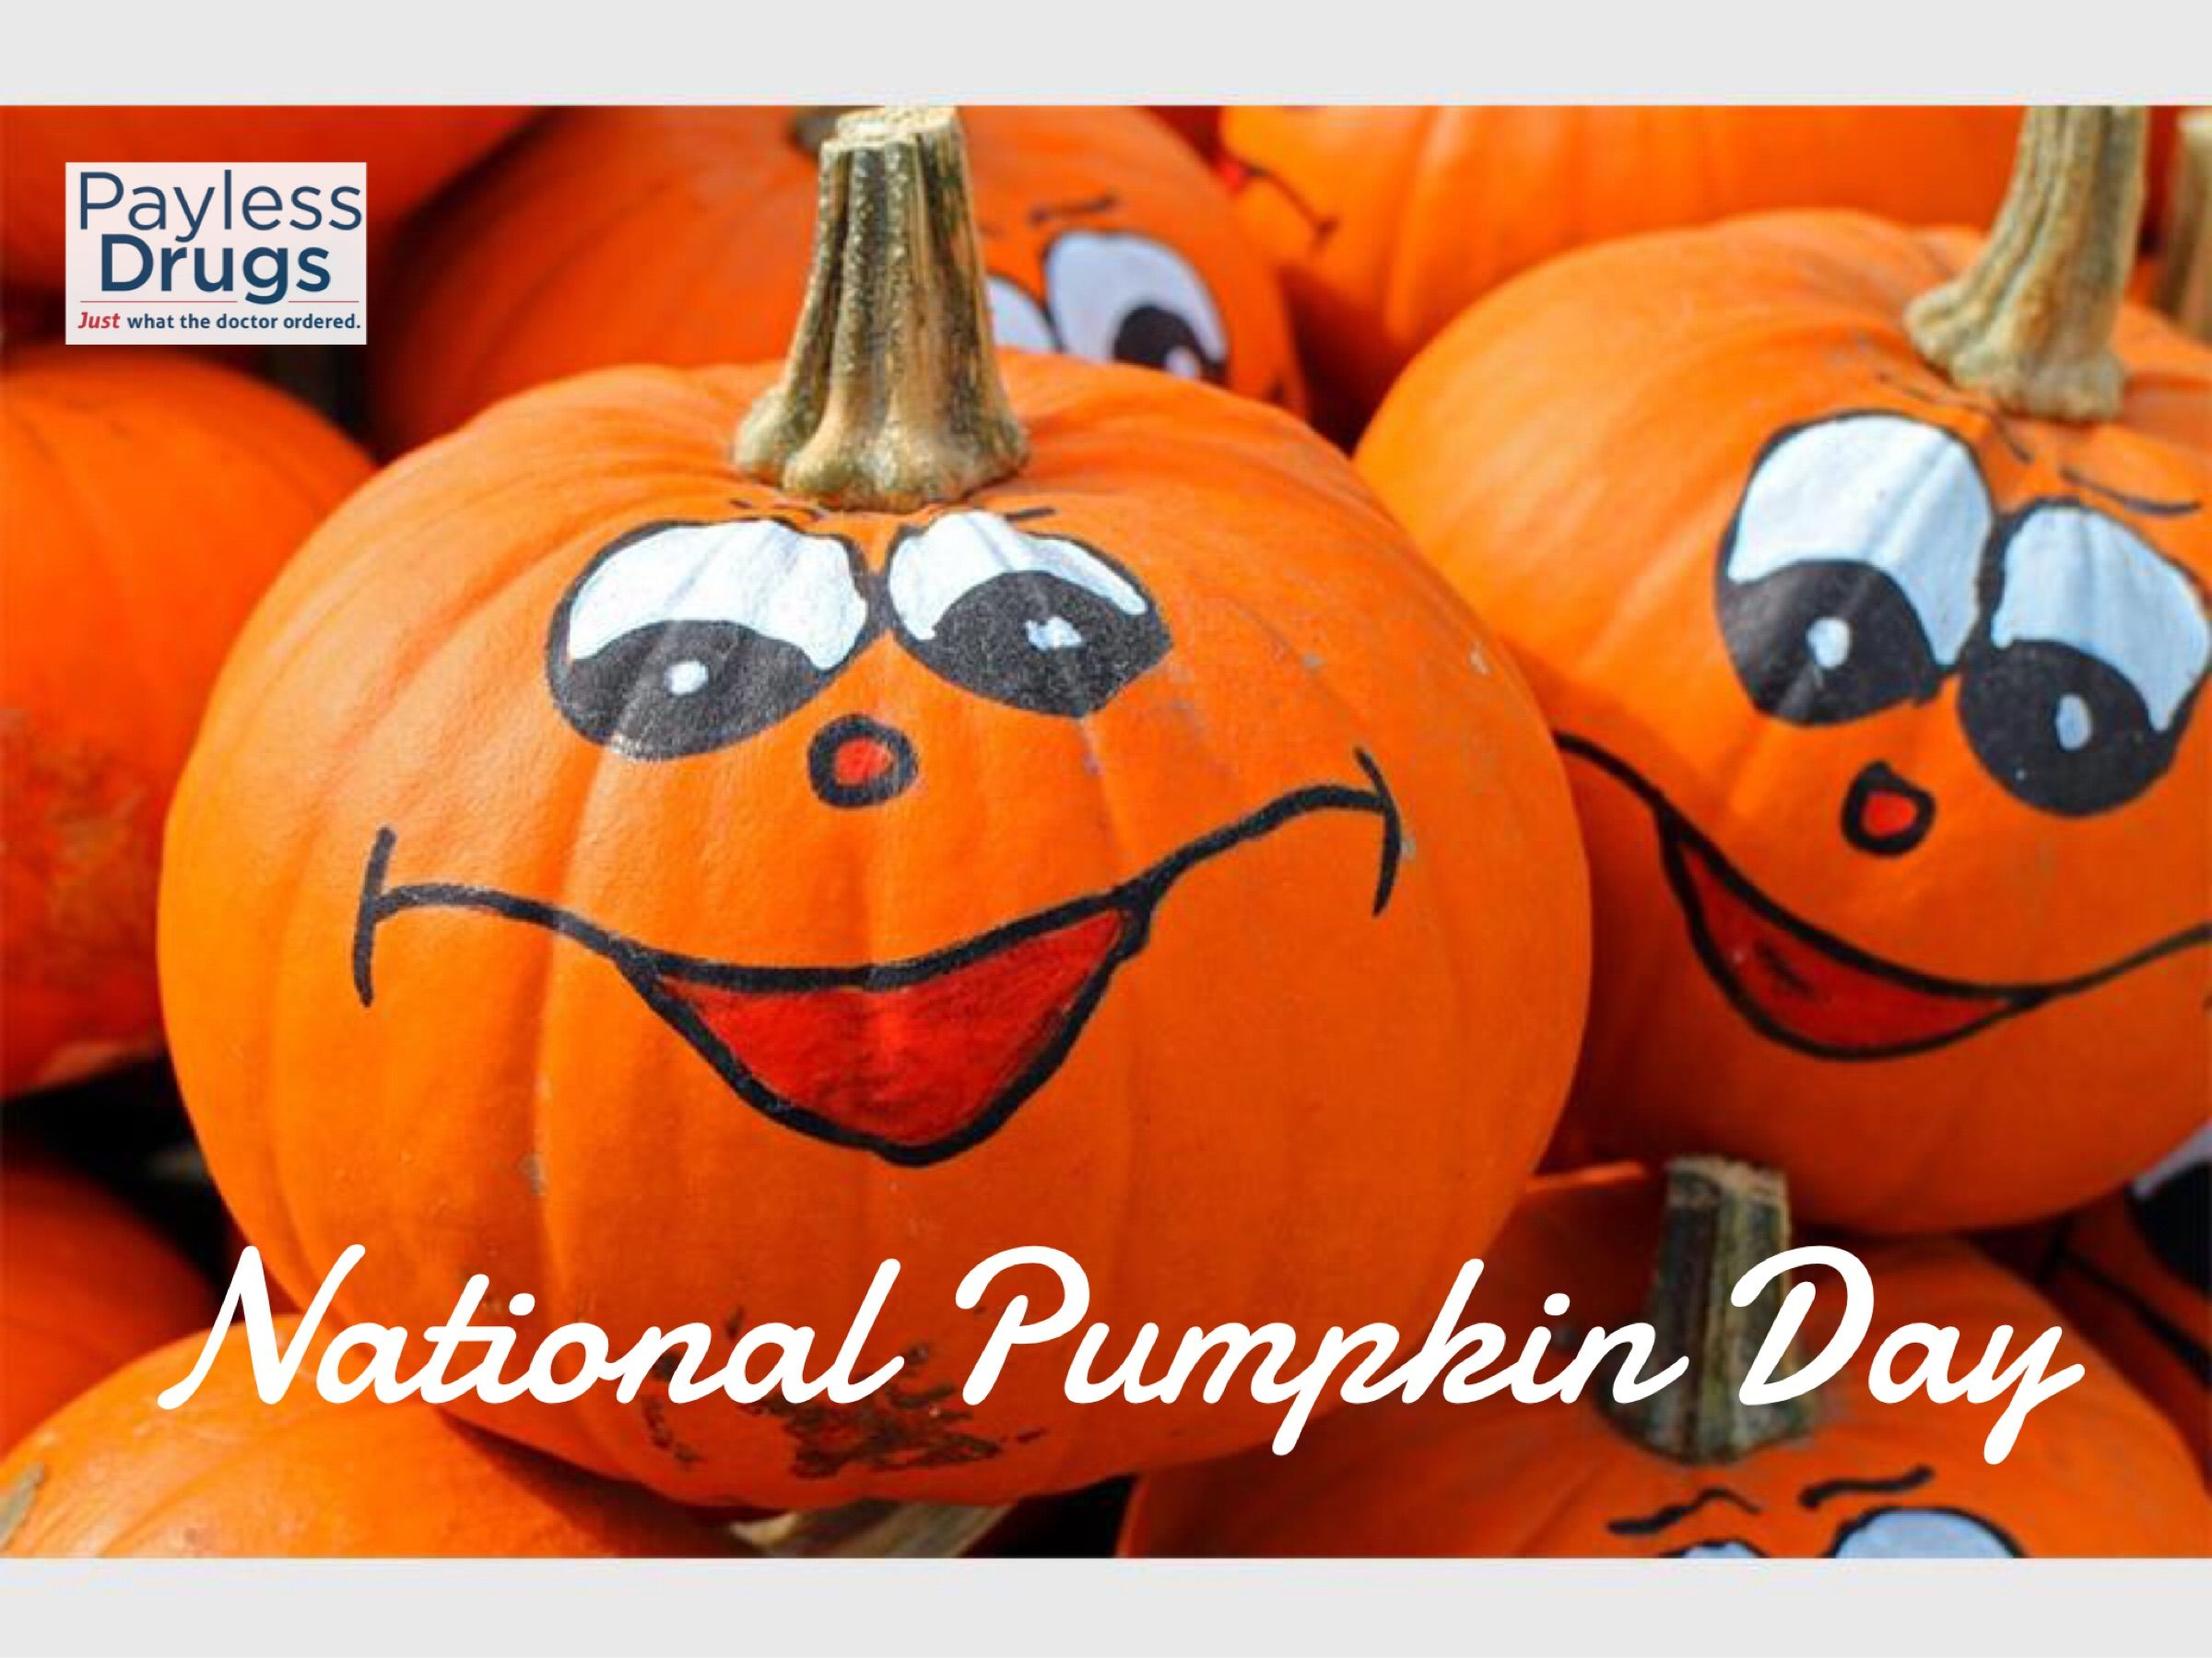 Today Is National Pumpkin Day Share A Picture Of Your Pumpkins And Jack O Lanterns With Us Pumpkin Free Halloween Pumpkin Decorating